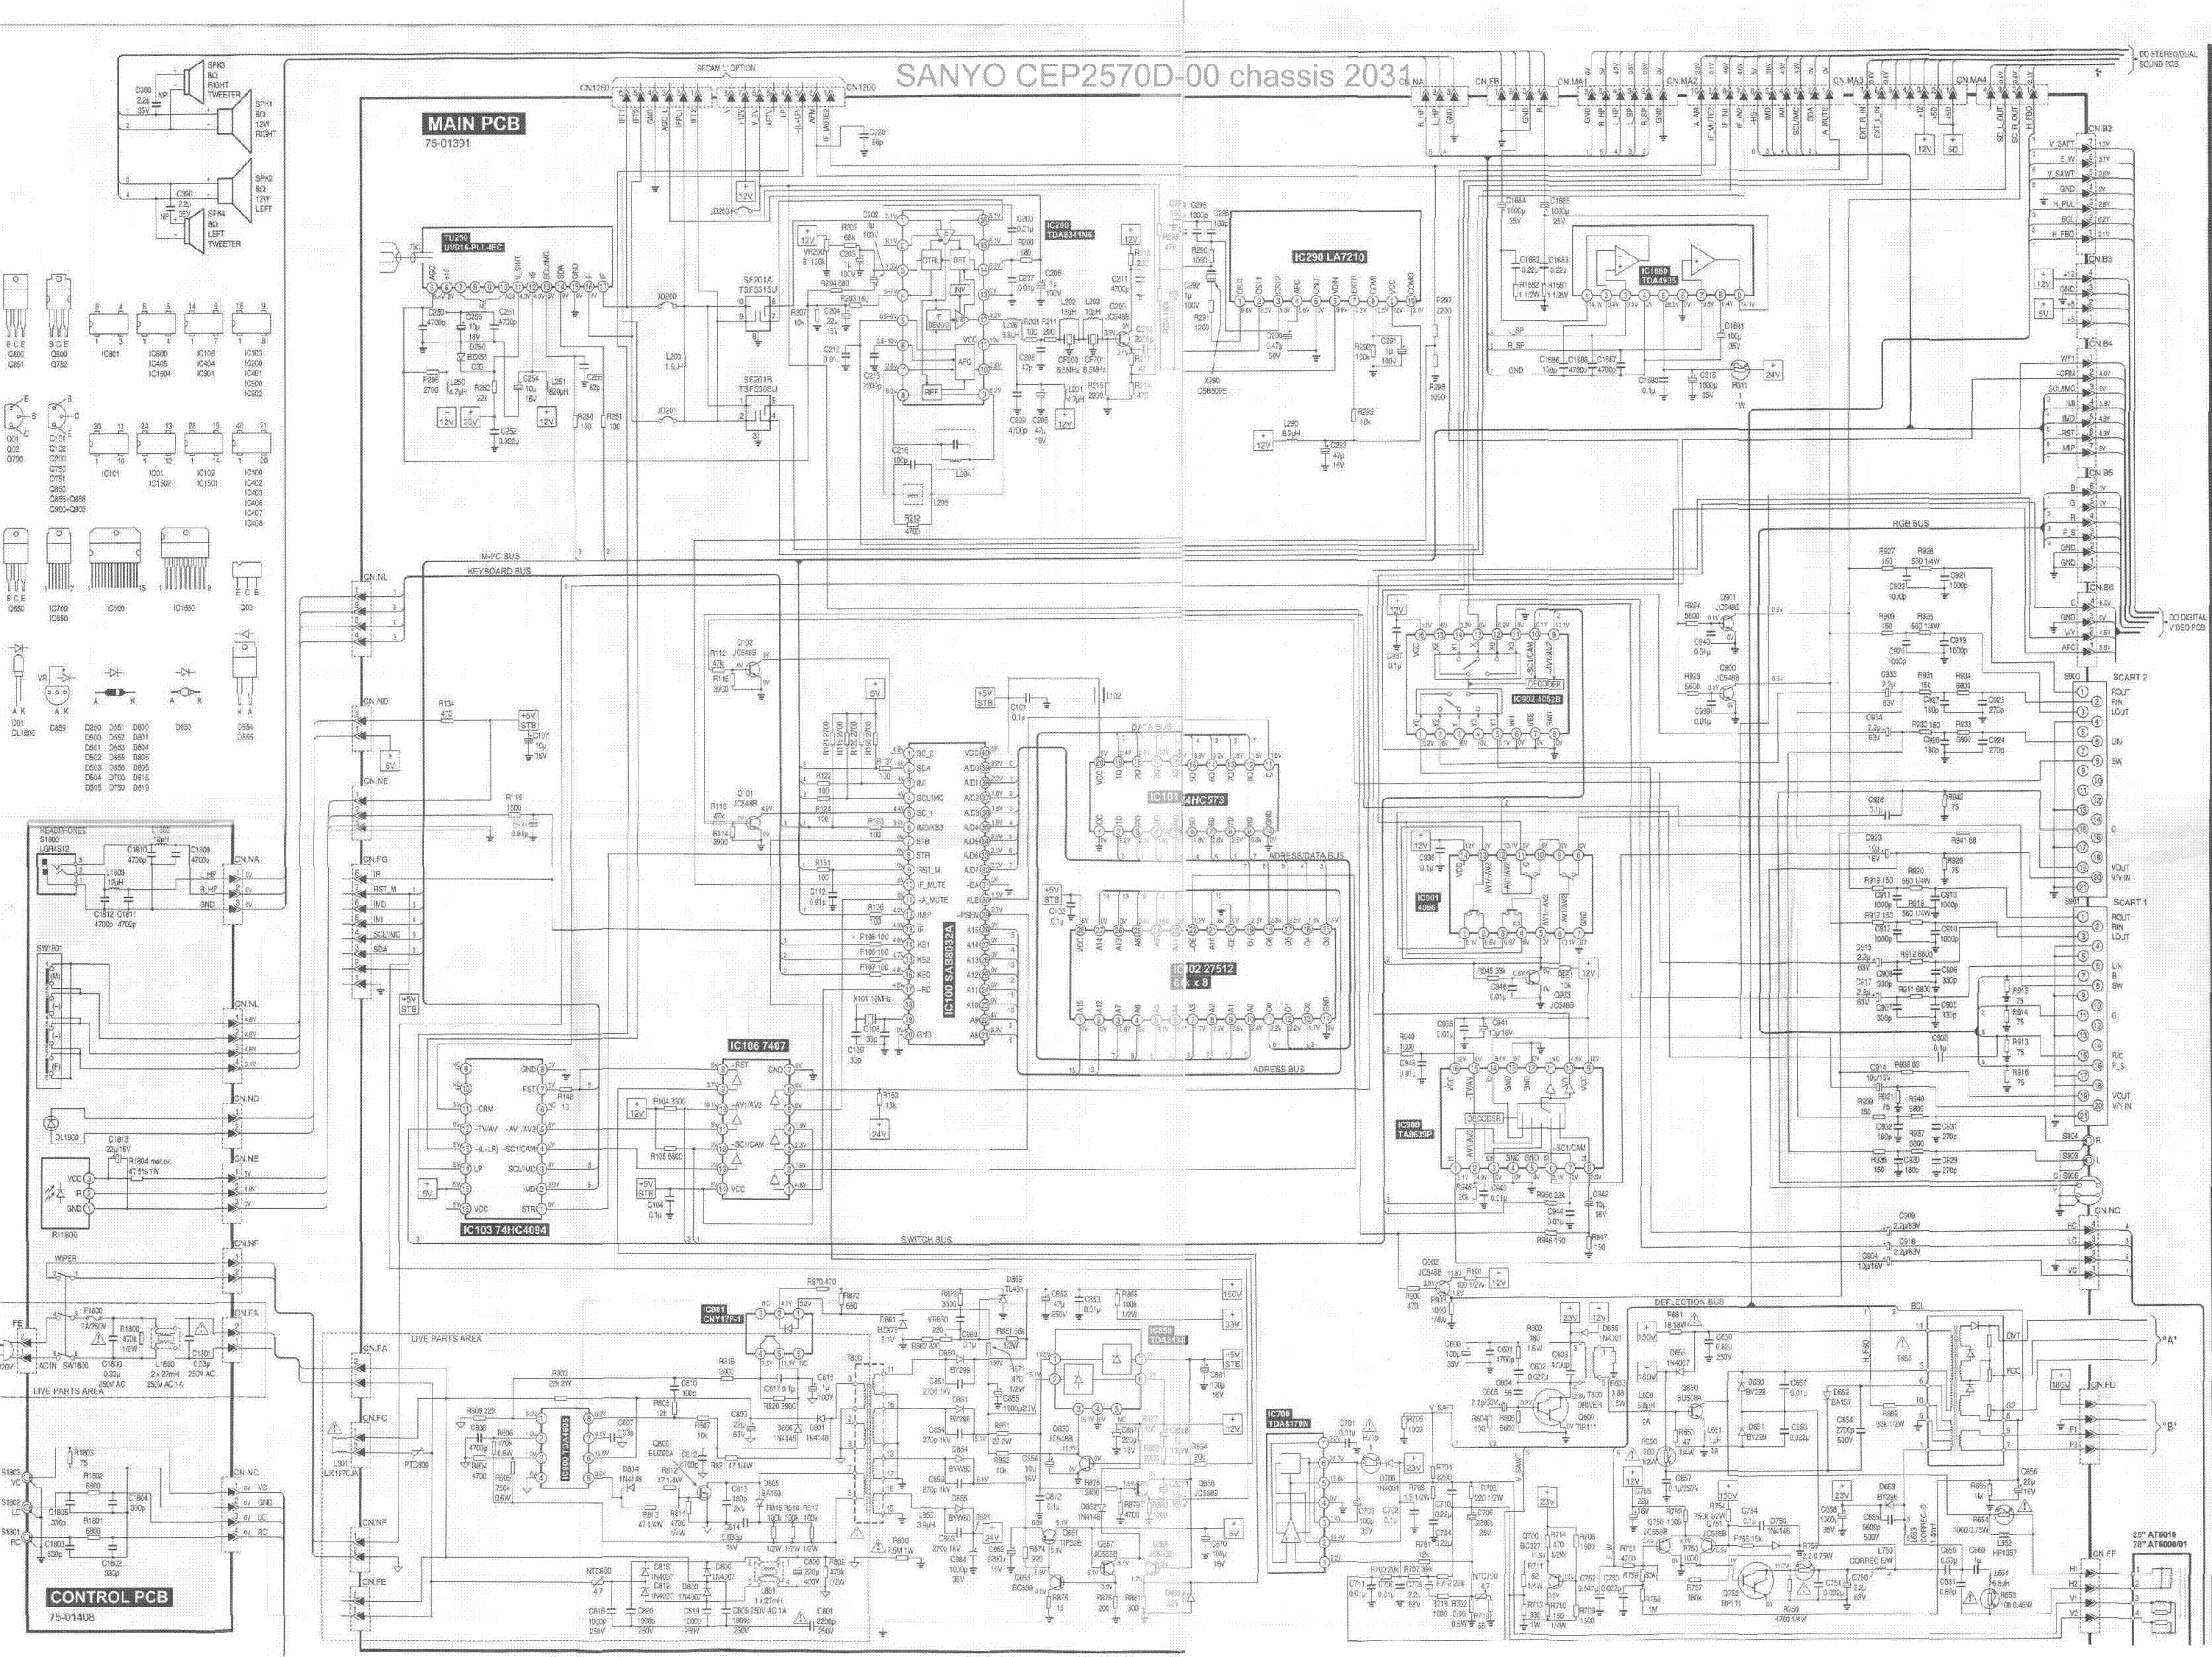 SANYO CEP2570D-00 Service Manual download, schematics